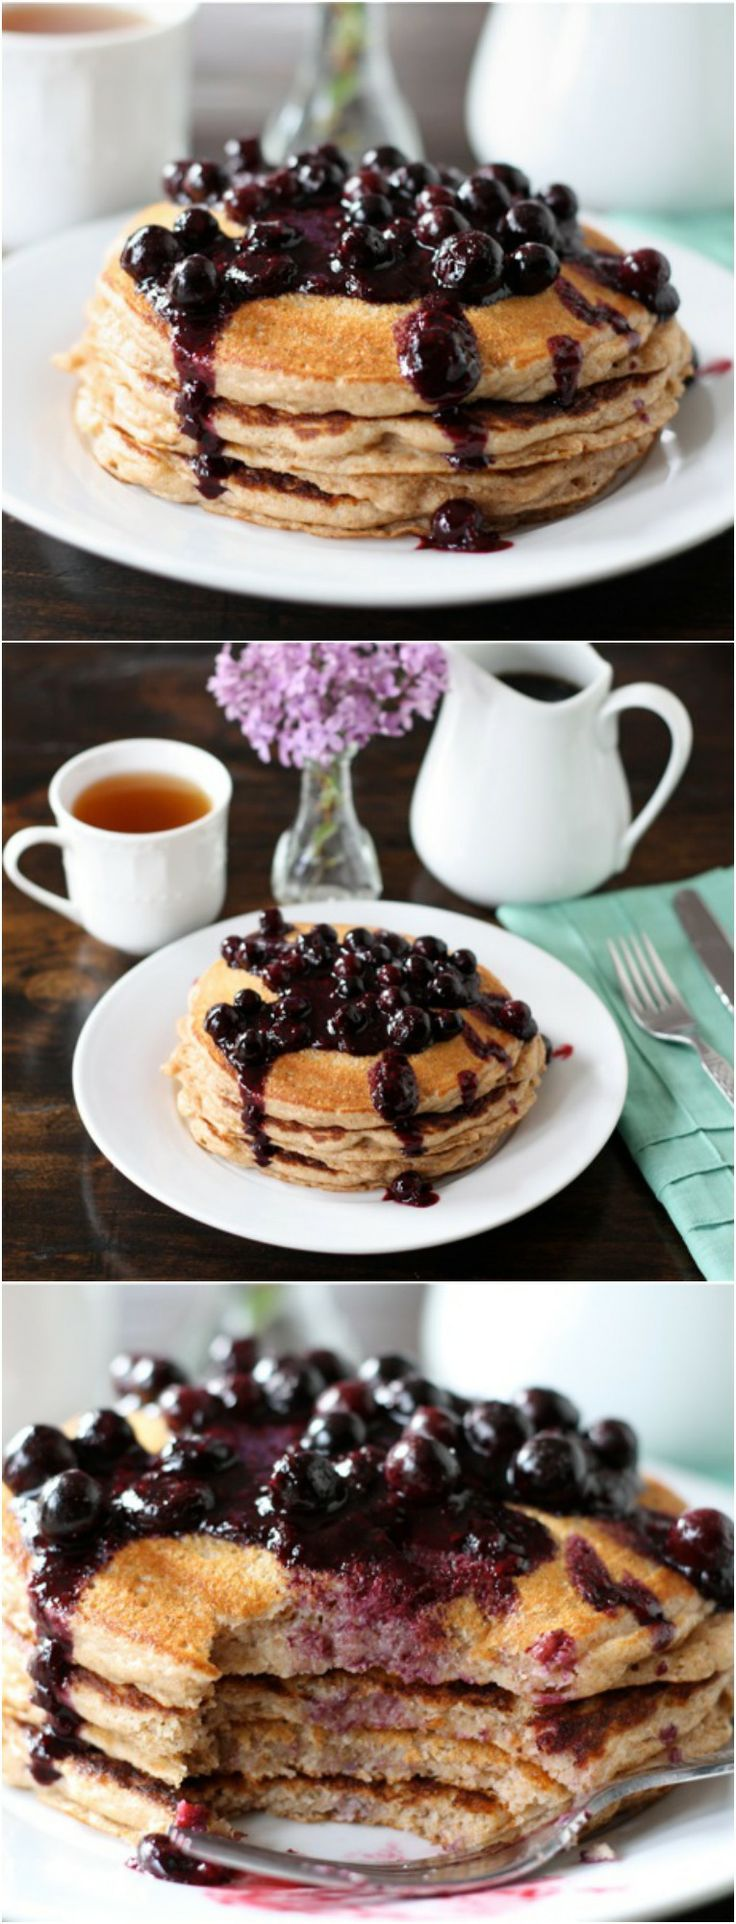 Whole Wheat Kefir Pancakes with Blueberry Sauce Recipe on twopeasandtheirpod.com. Fluffy whole wheat kefir pancakes with a simple blueberry sauce! #pancakes #mothersday